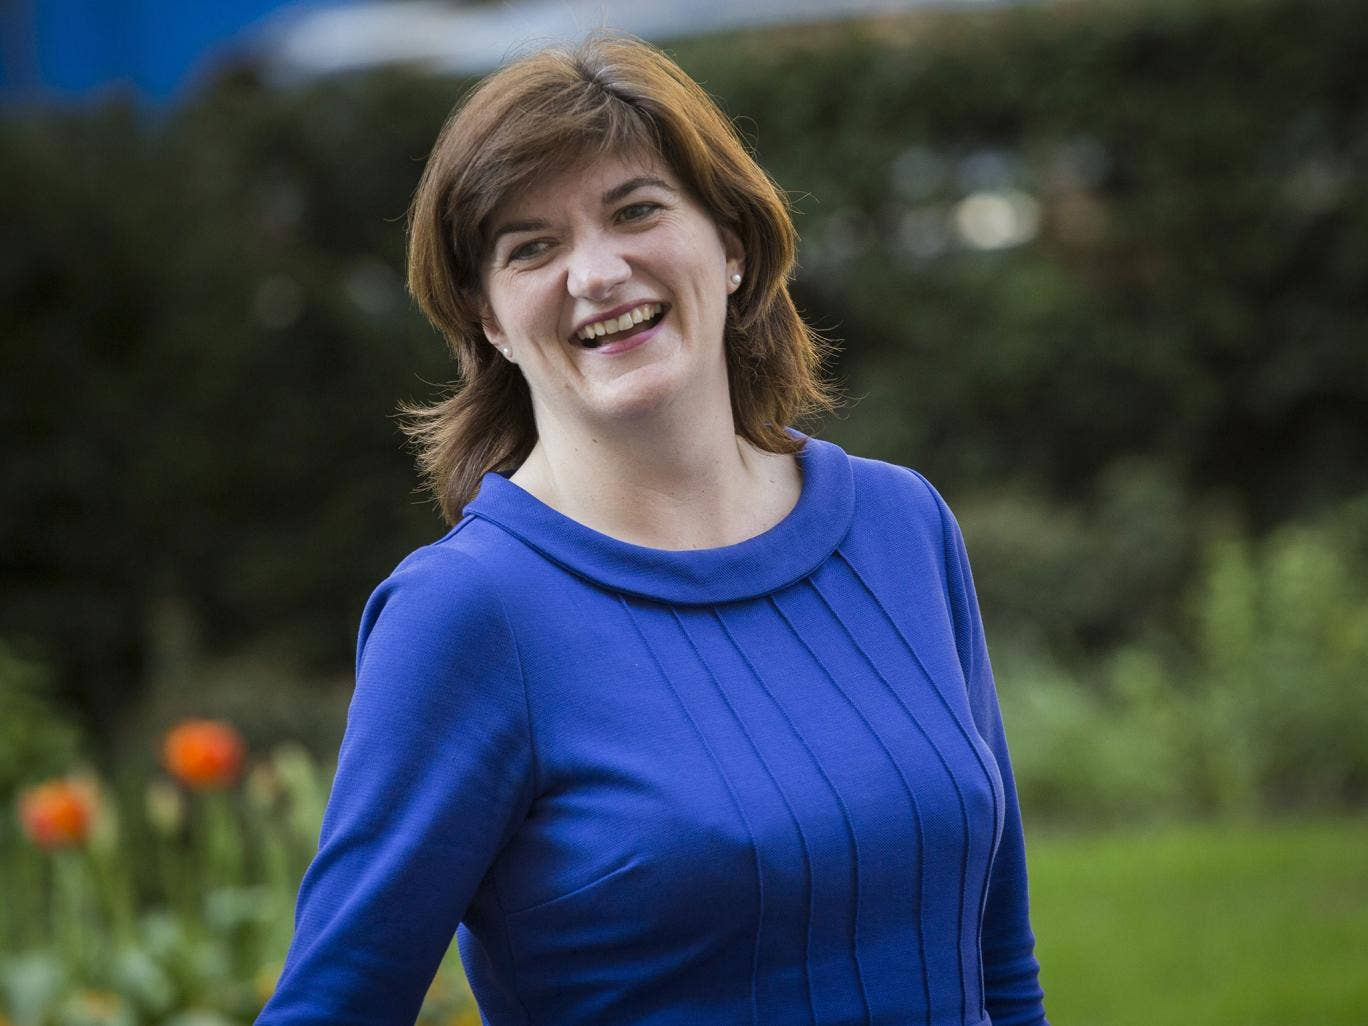 The Prime Minister's announcement that Nicky Morgan has been promoted to the role of Education Secretary has been met with mixed reactions after it emerged she voted against legalising same-sex marriage.